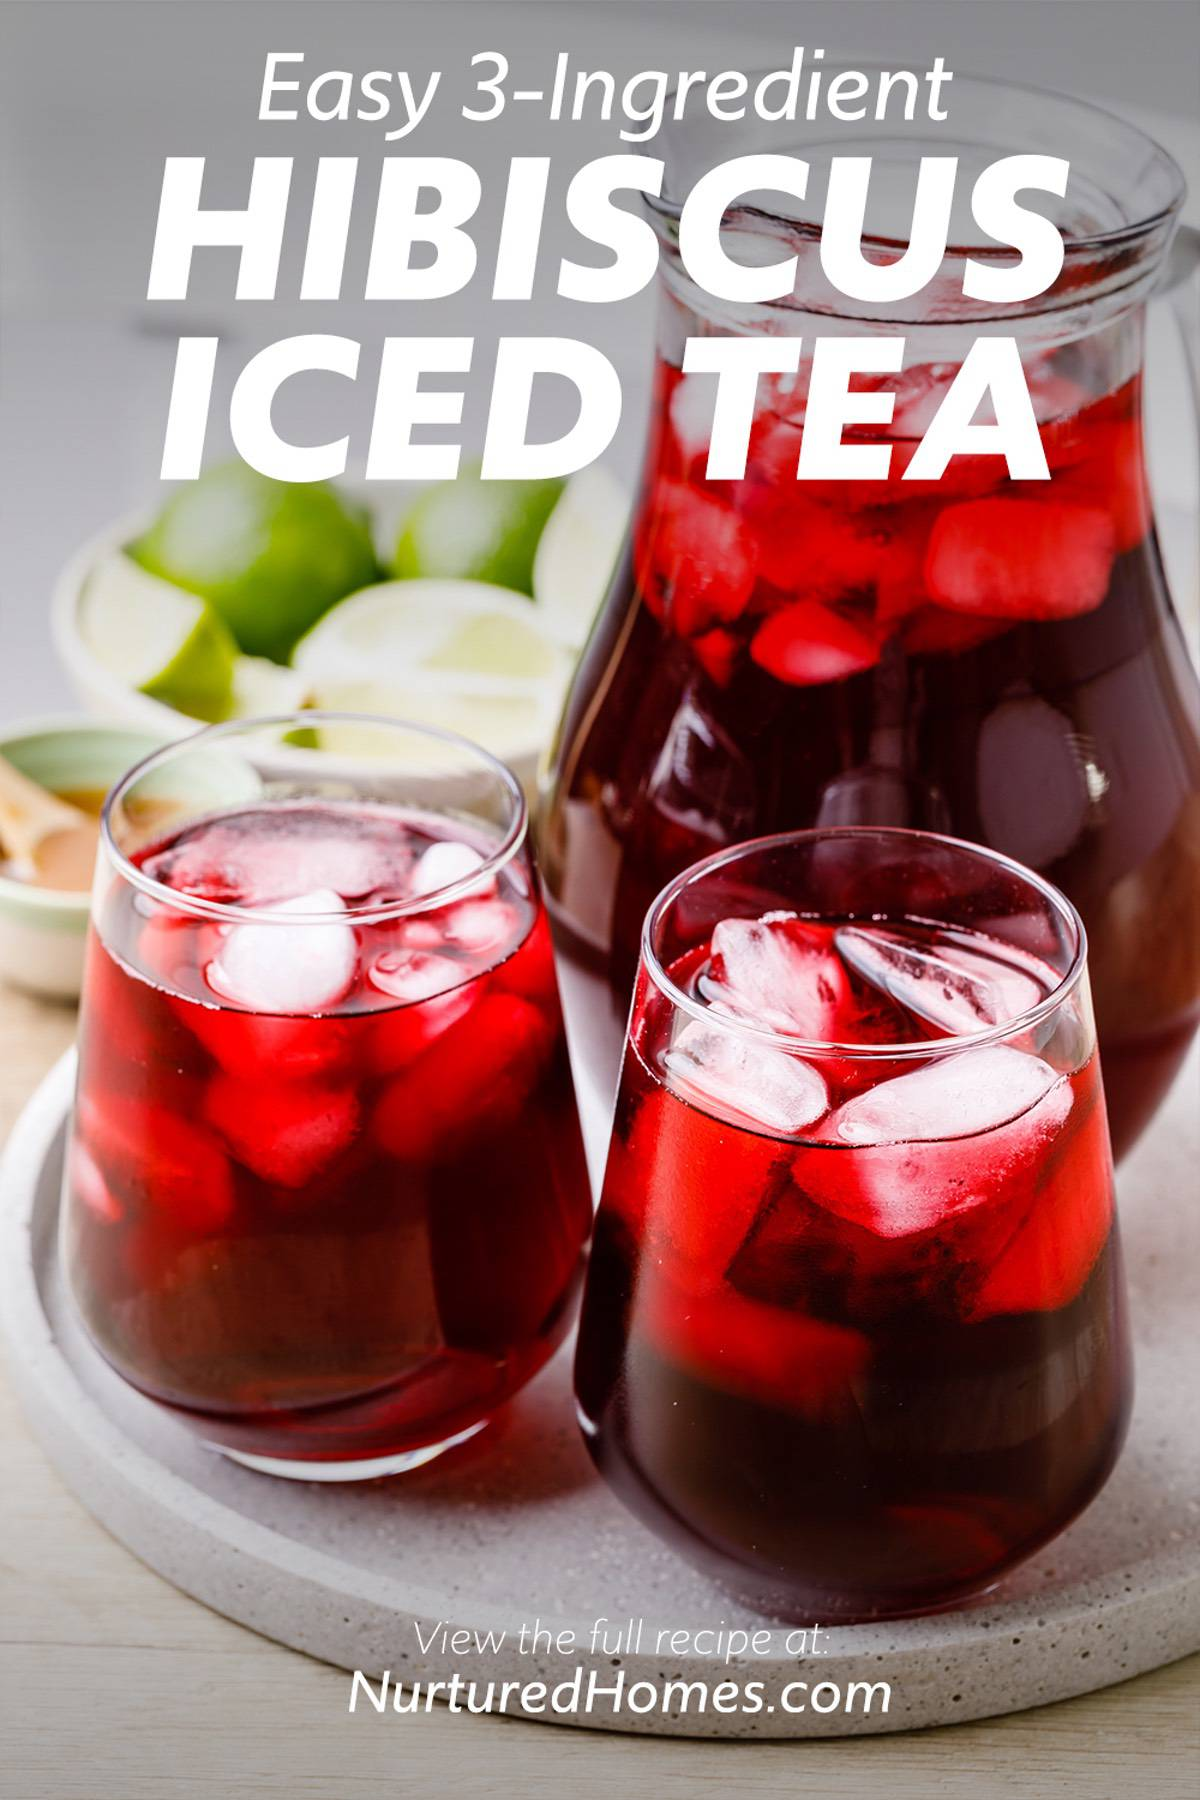 Easy and Refreshing 3-Ingredient Hibiscus Iced Tea Recipe